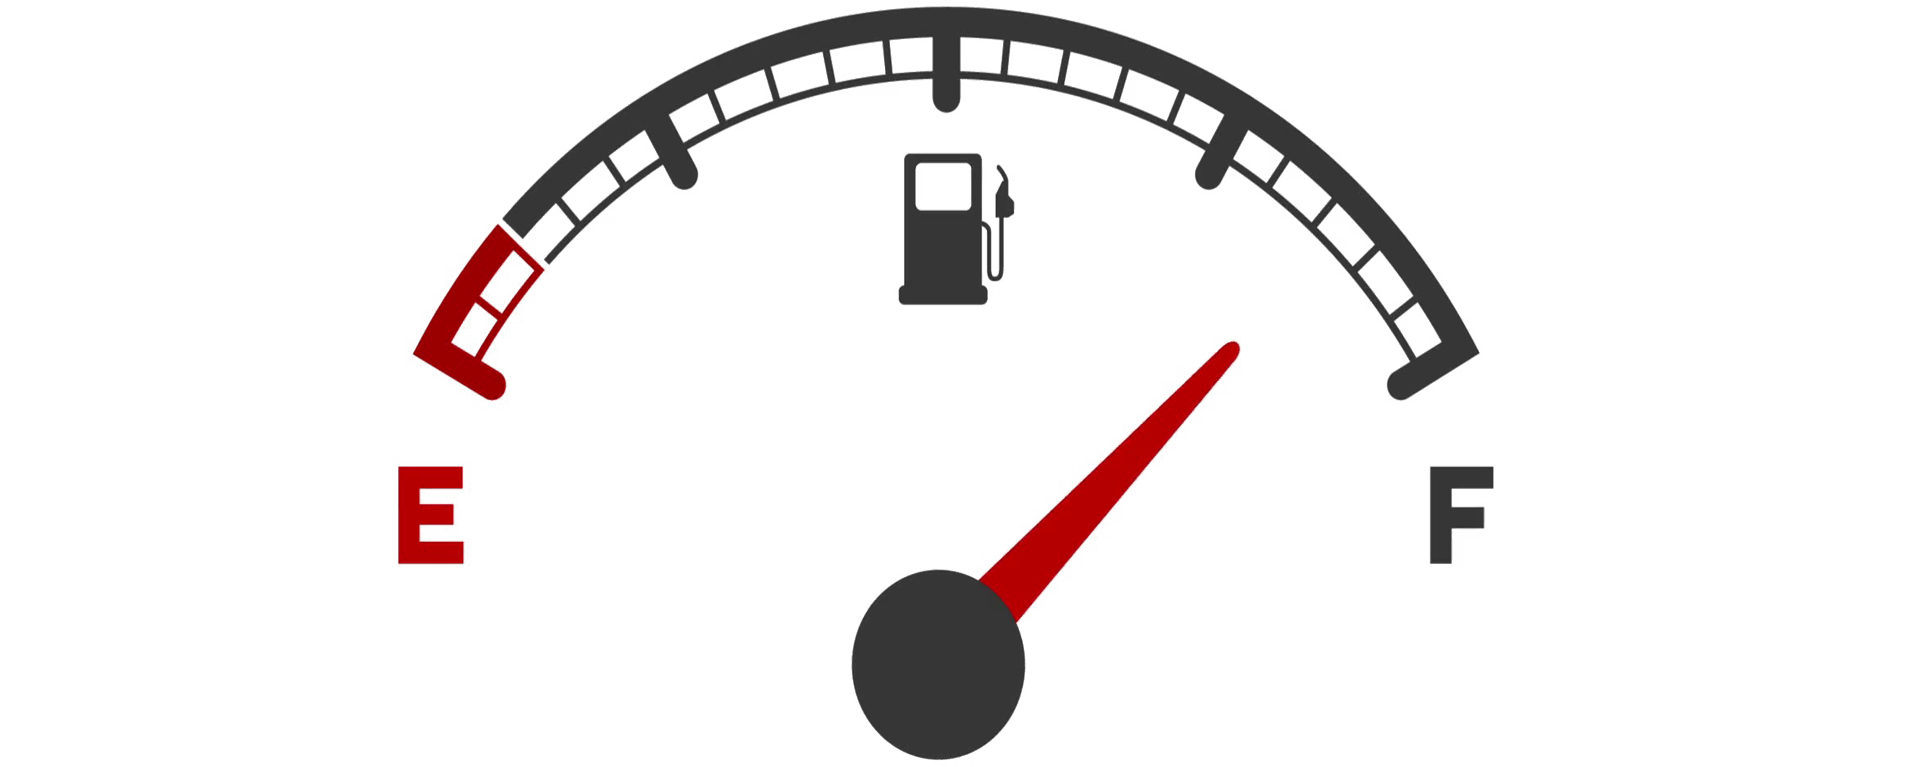 Fuel Monitoring and Control